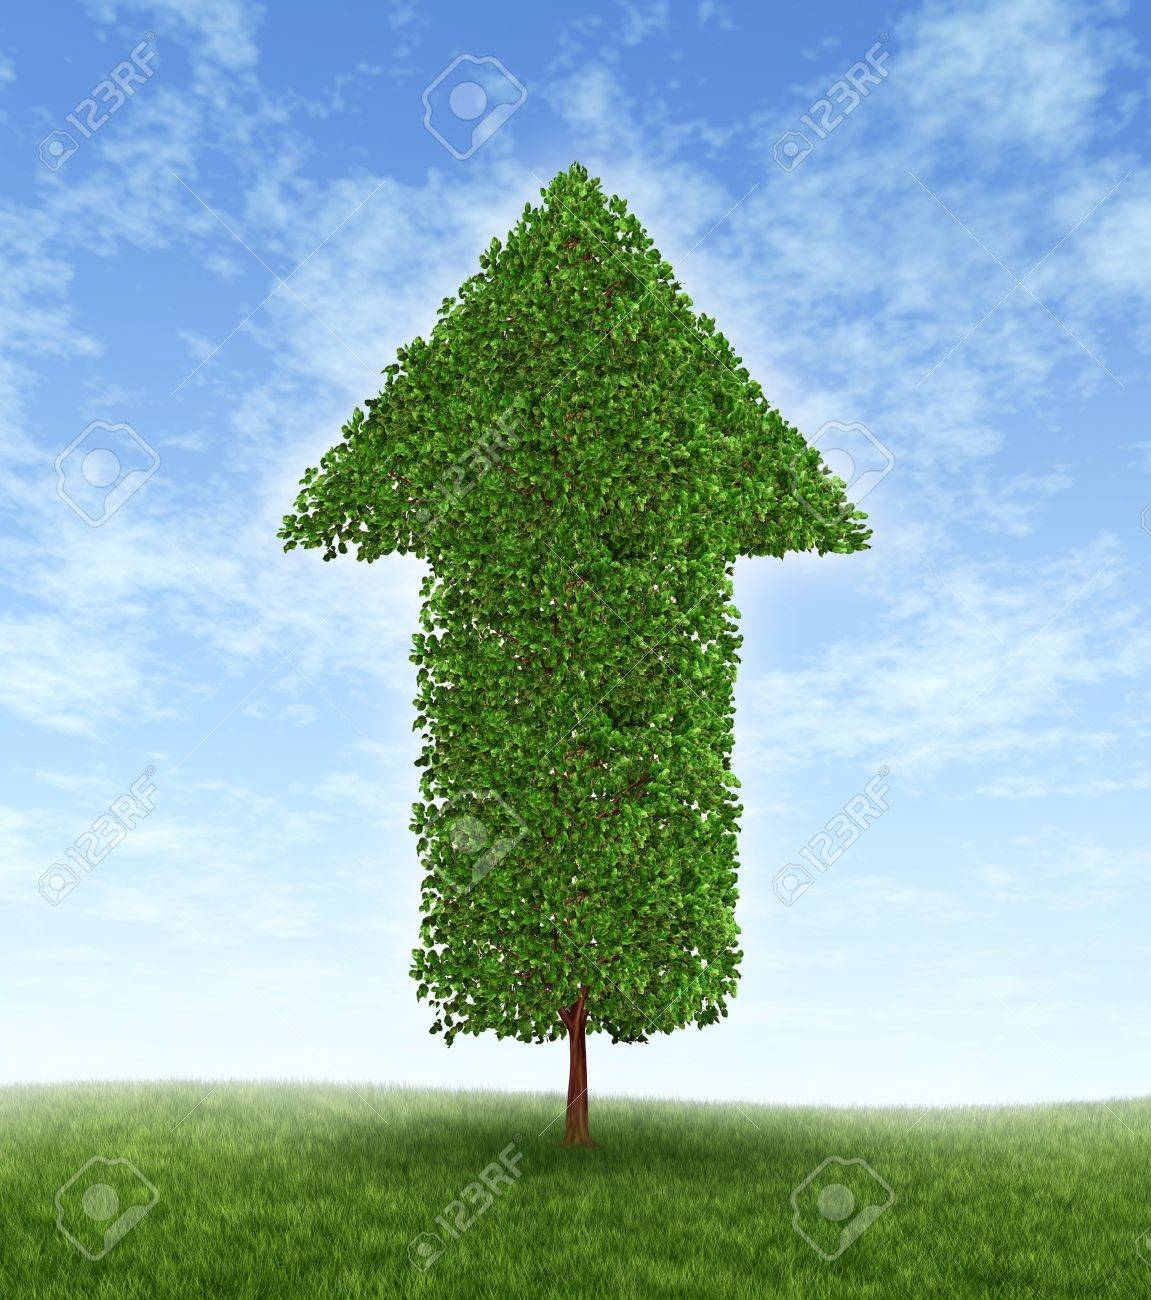 Growth investing and financial business success during economic good times due to compound interest from investments for linear productivity developement with a green tree in the shape of an arrow pointing upwards to the blue sky. Stock Photo - 12082741